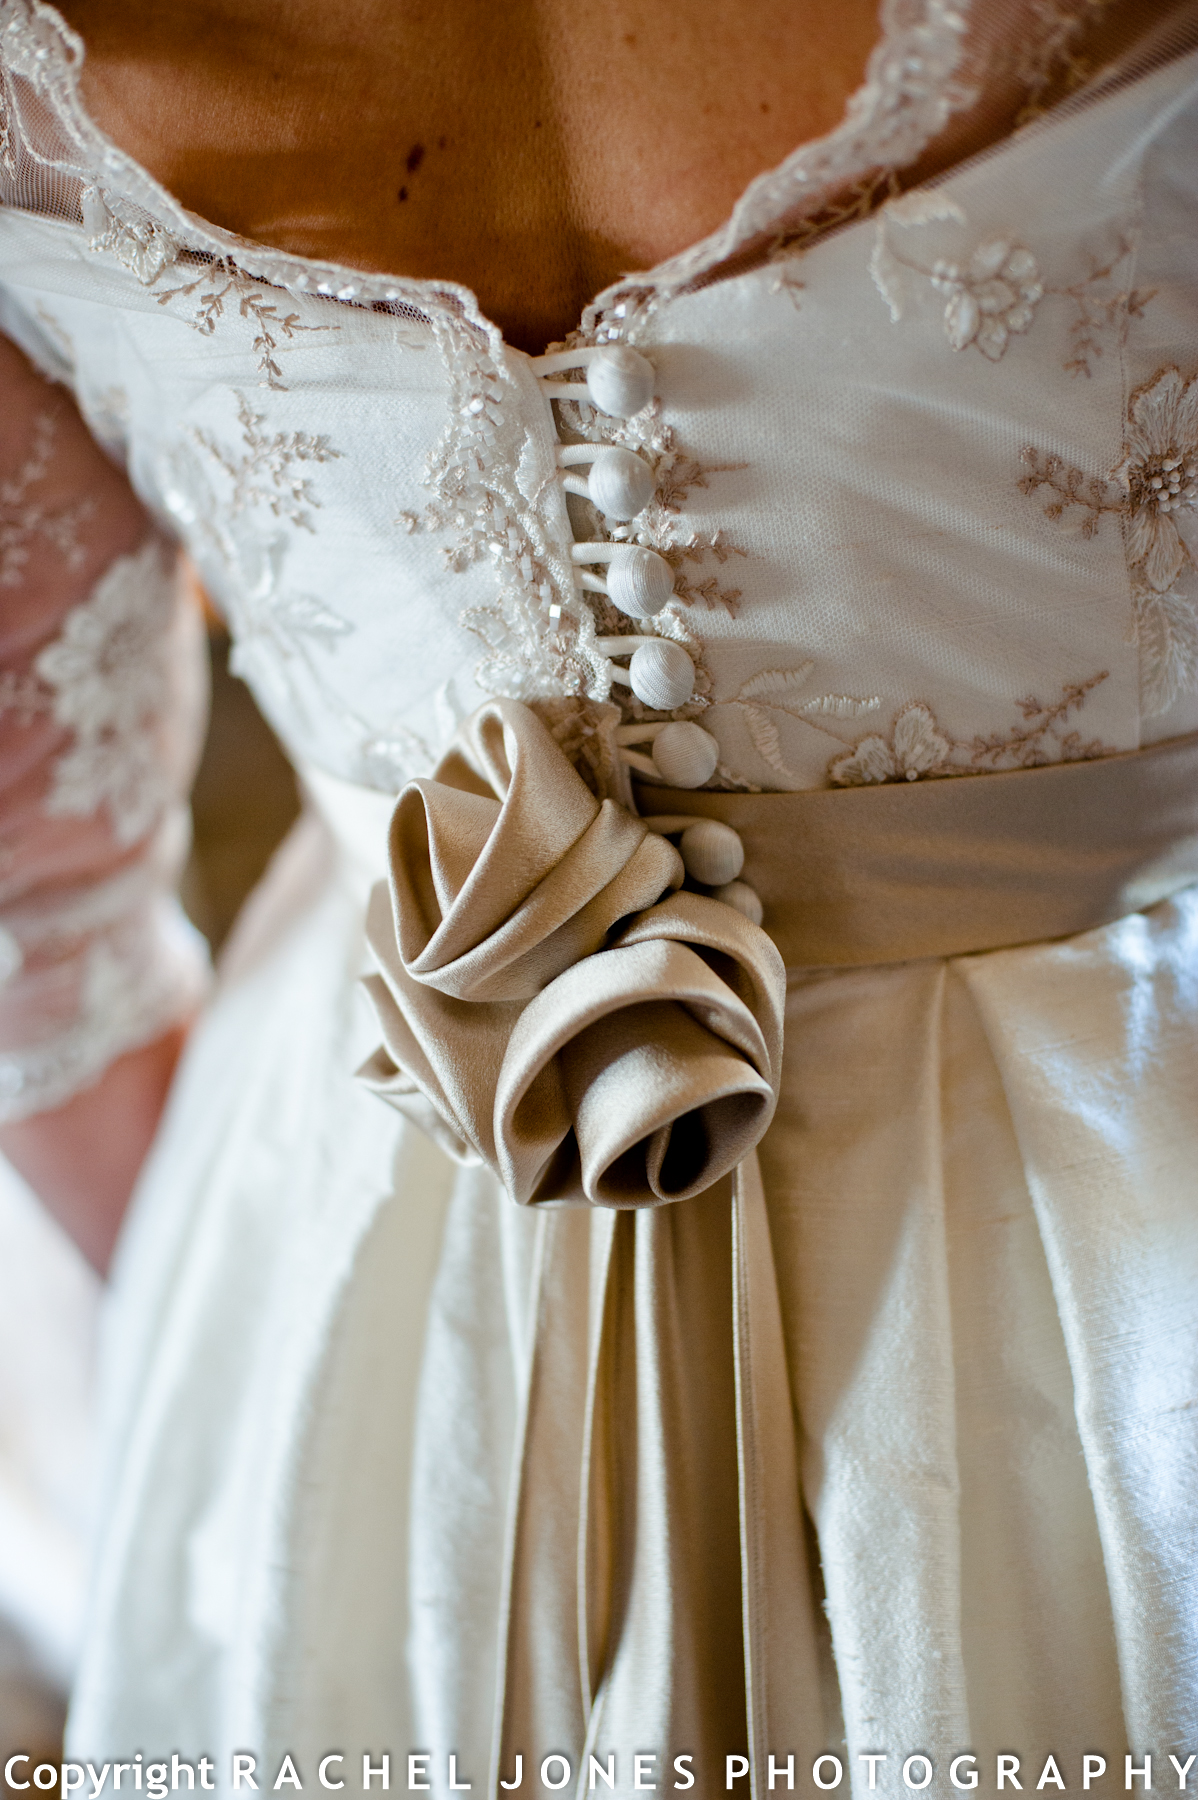 Some lovely details on Anna's dress by Freja Designer Dressmaker, Edinburgh